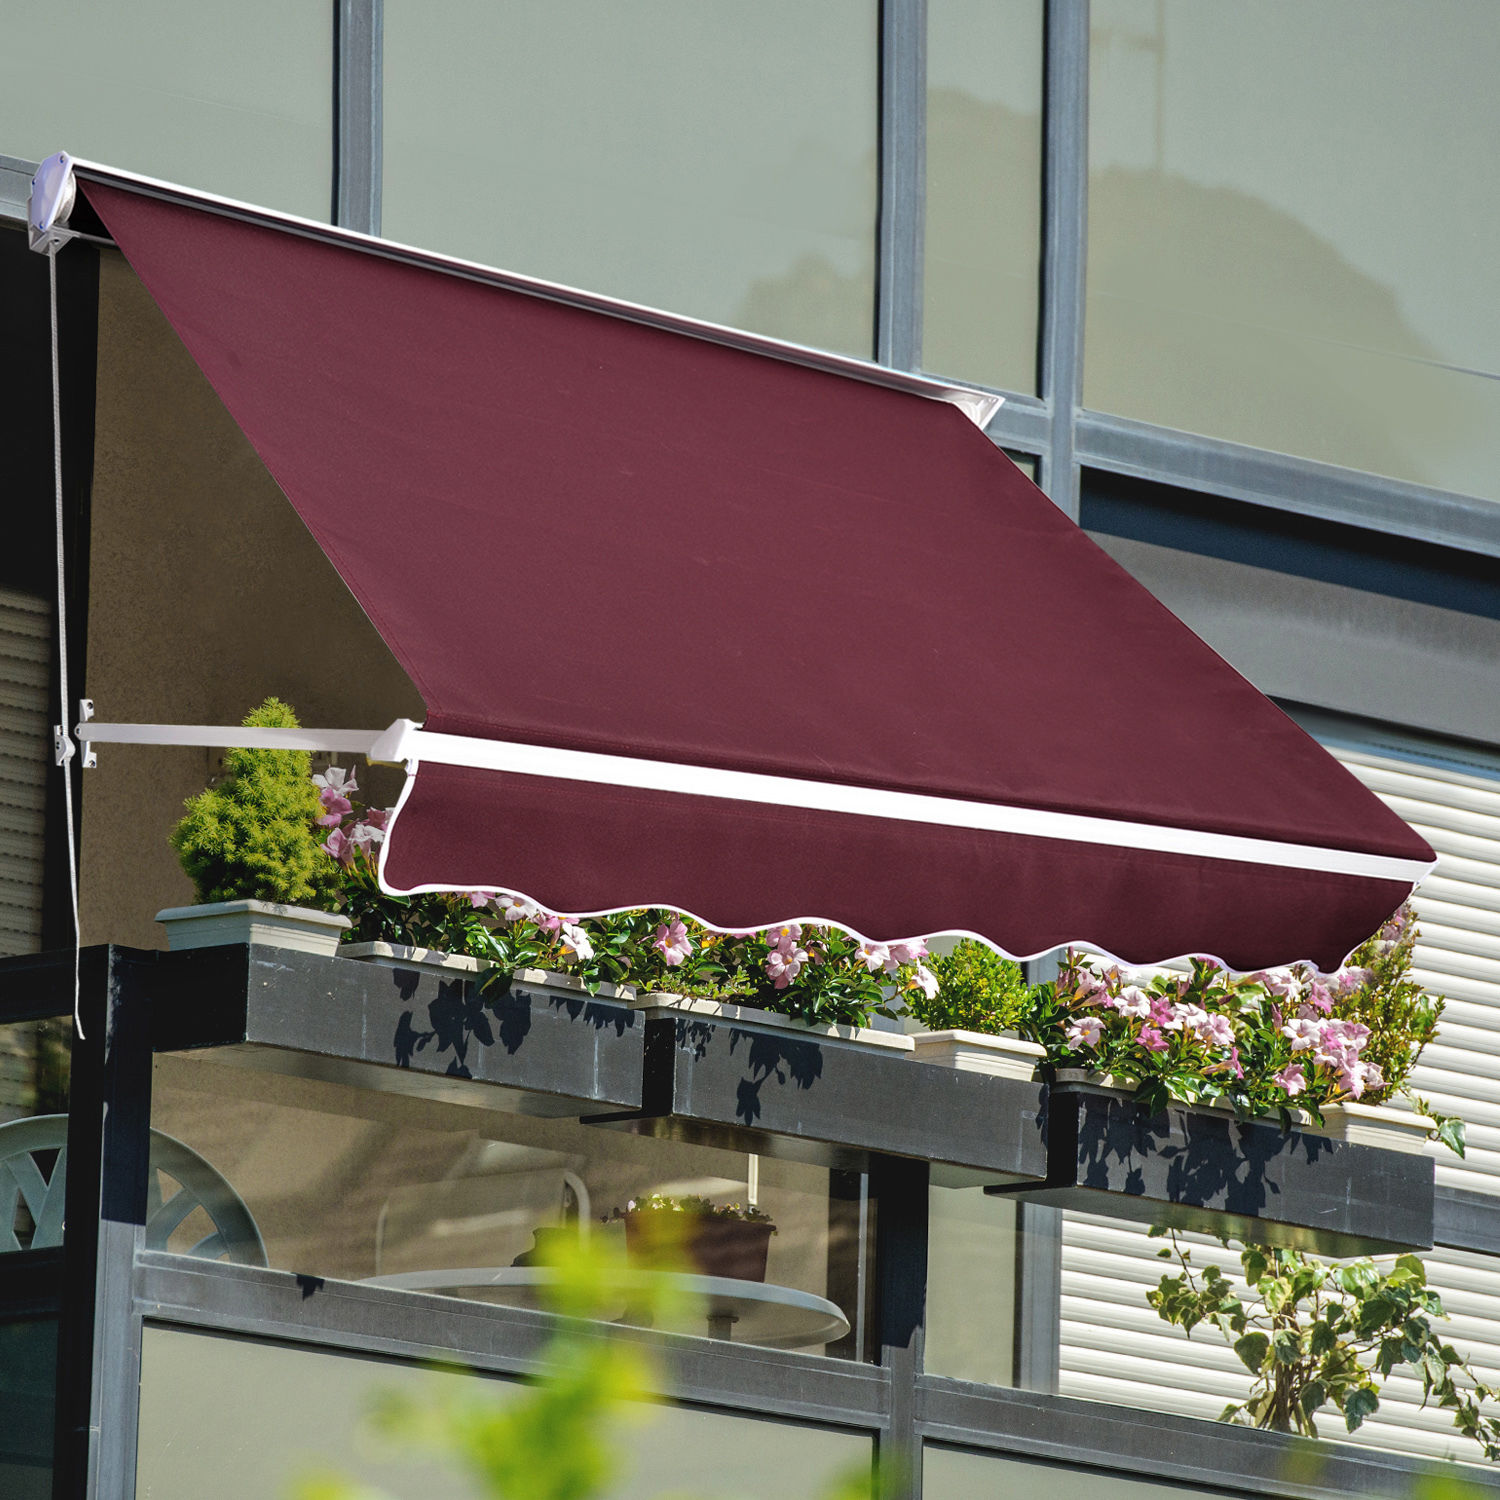 13x8 awning canopy sunshade shelter manual patio deck retractable